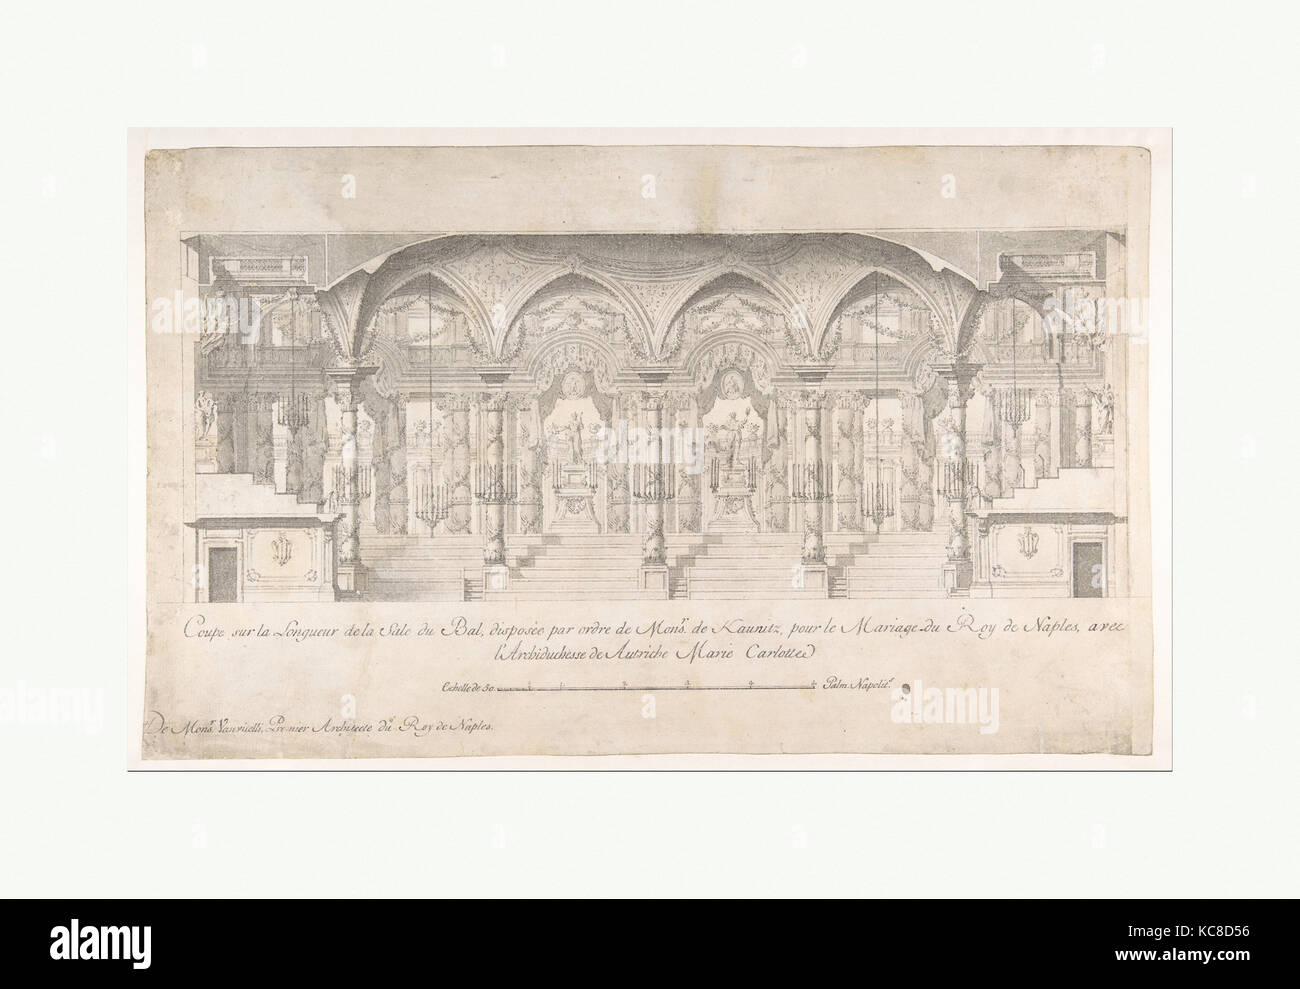 Longitudinal Section of a Ballroom Decorated for the Marriage of the King of Naples to the Archduchess of Austria - Stock Image